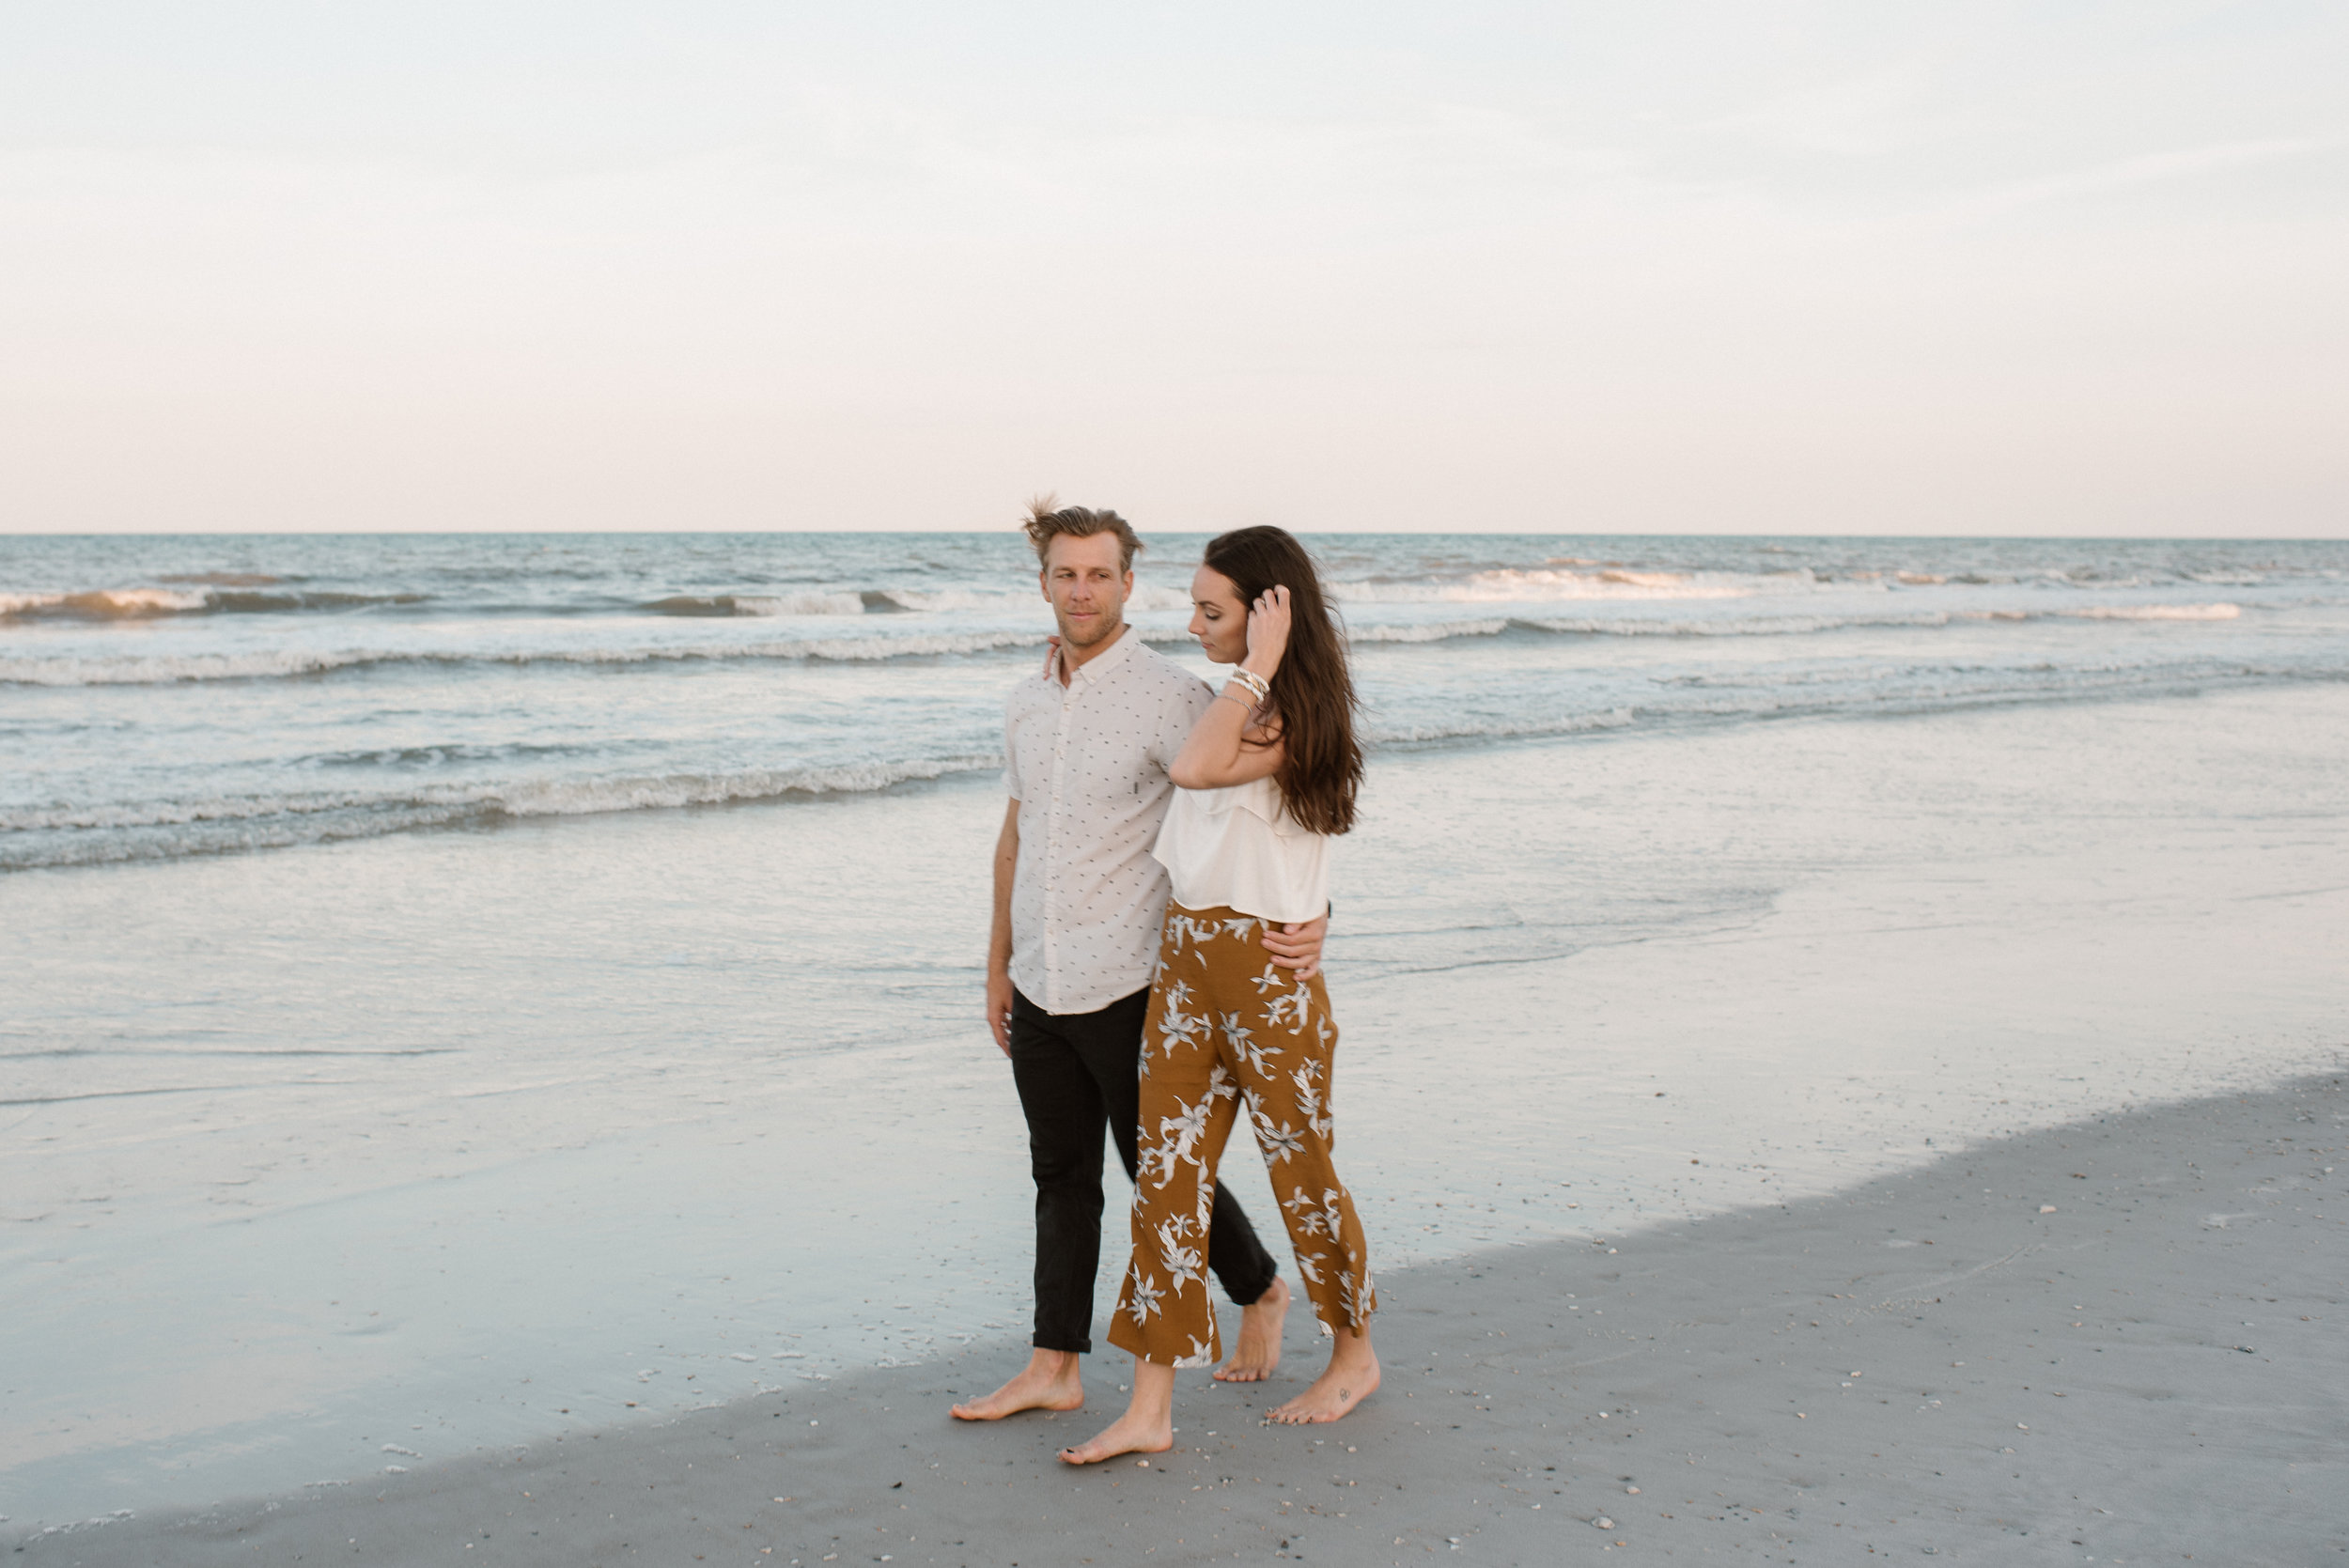 atlantic-beach-engagement-photos-heather-and-cody-112.jpg